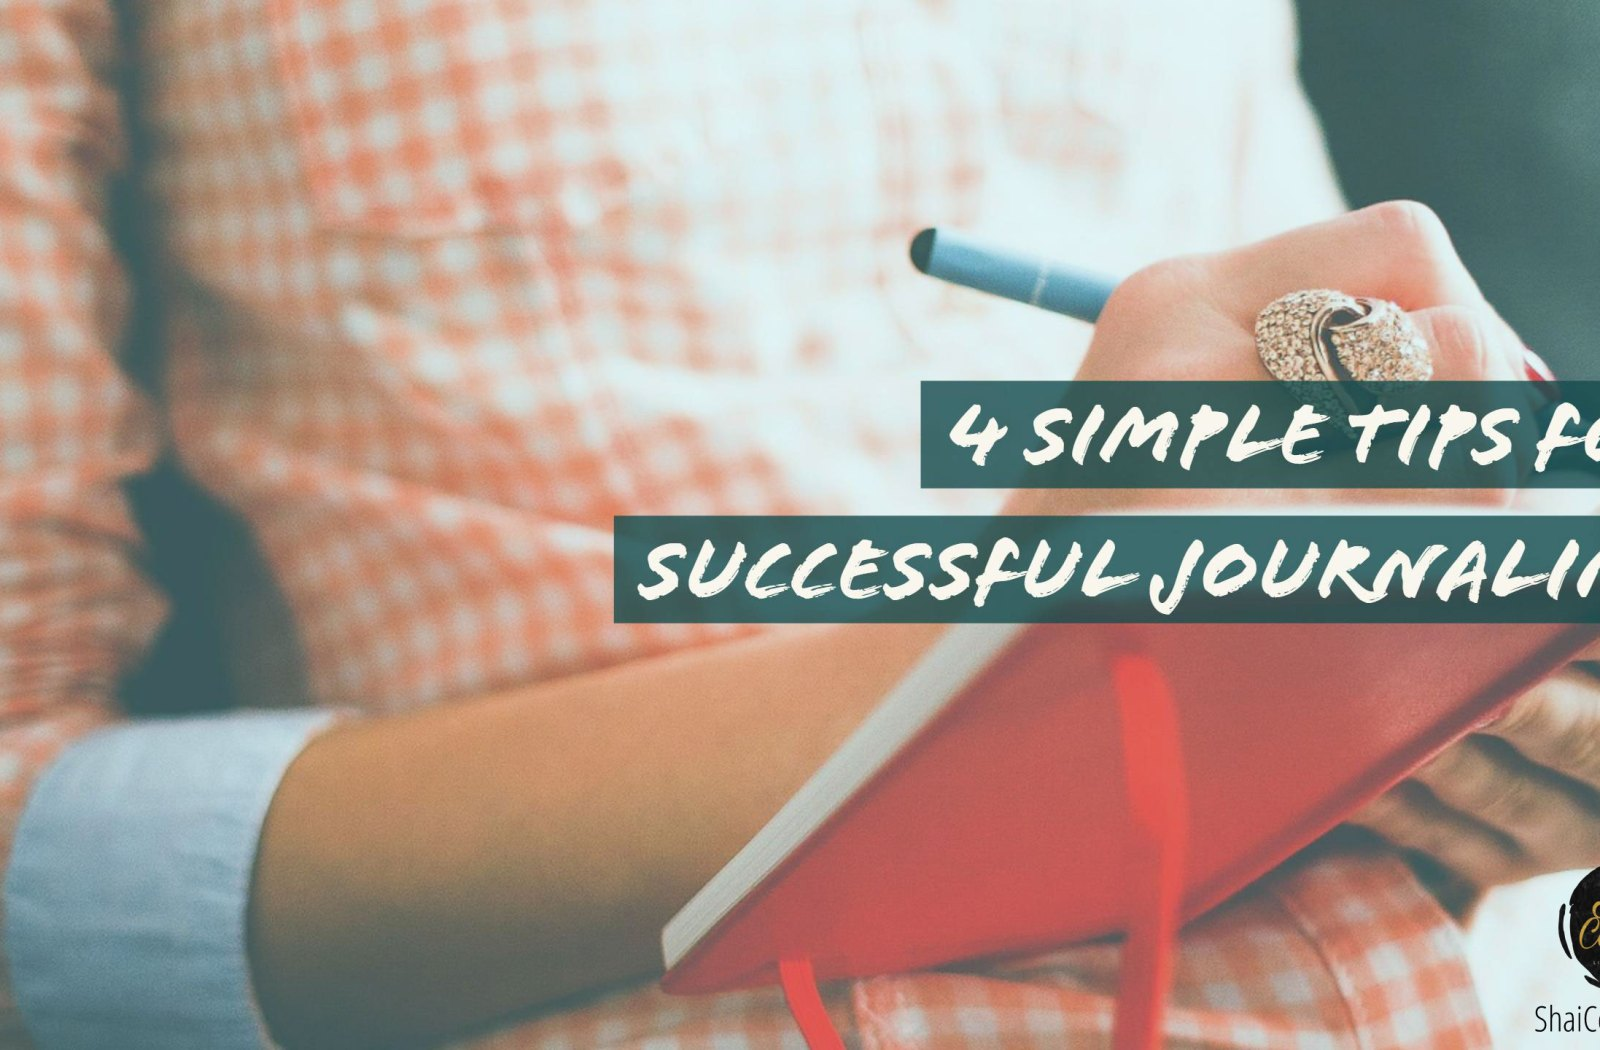 4 Simple Tips For Successful Journaling